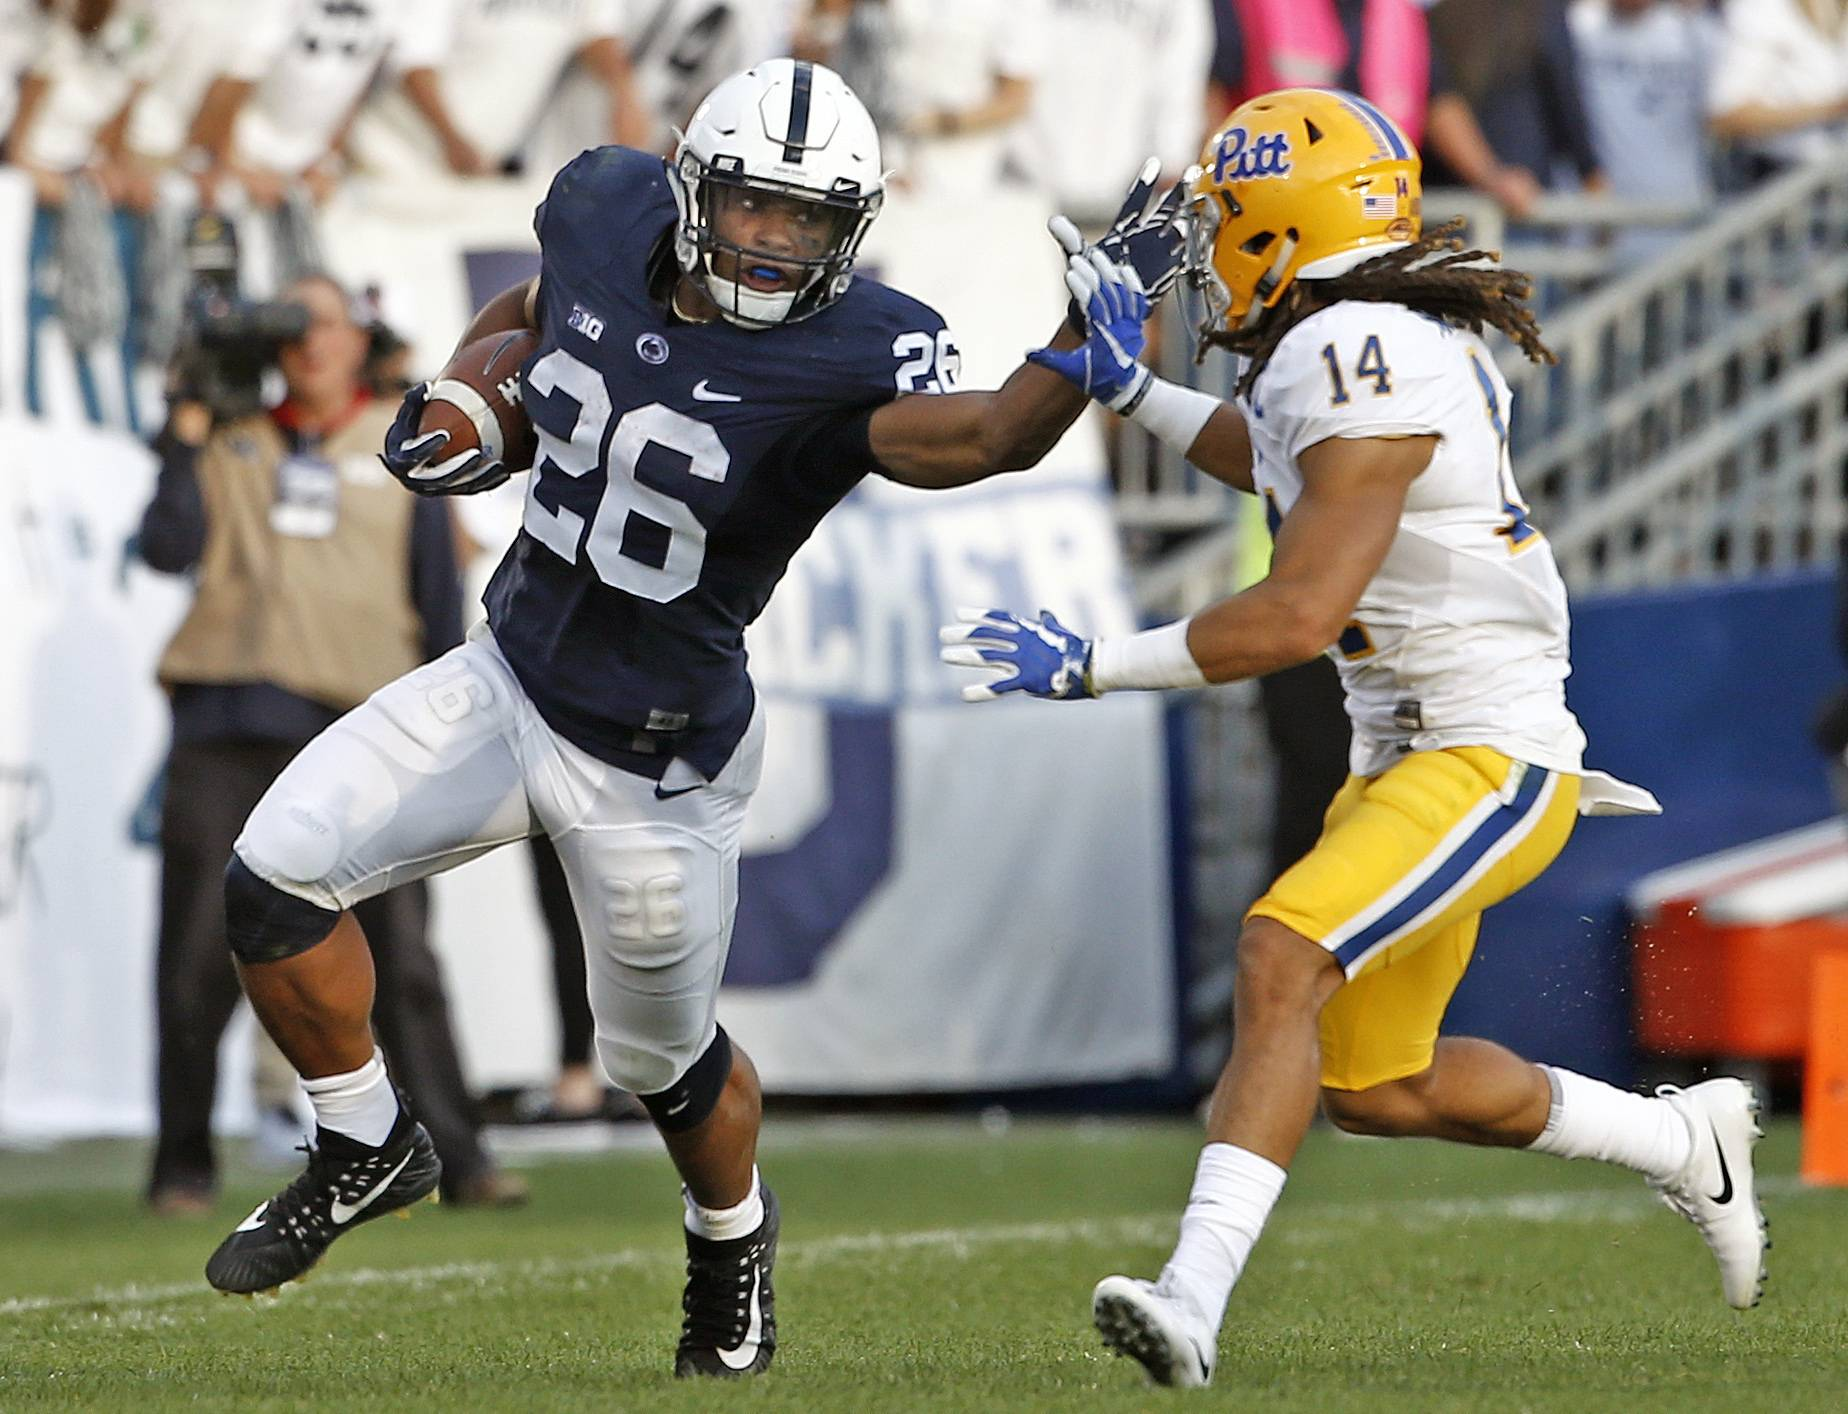 FILE - In this Saturday, Sept. 9, 2017 file photo, Penn State's Saquon Barkley (26) looks to stiff arm Pittsburgh's Avonte Maddox (14) during the second half of an NCAA college football game in State College, Pa. Penn State coach James Franklin sees the talent Northwestern has and the success the Wildcats have experienced under Pat Fitzgerald. Running back Saquon Barkley keeps padding his Heisman Trophy resume.